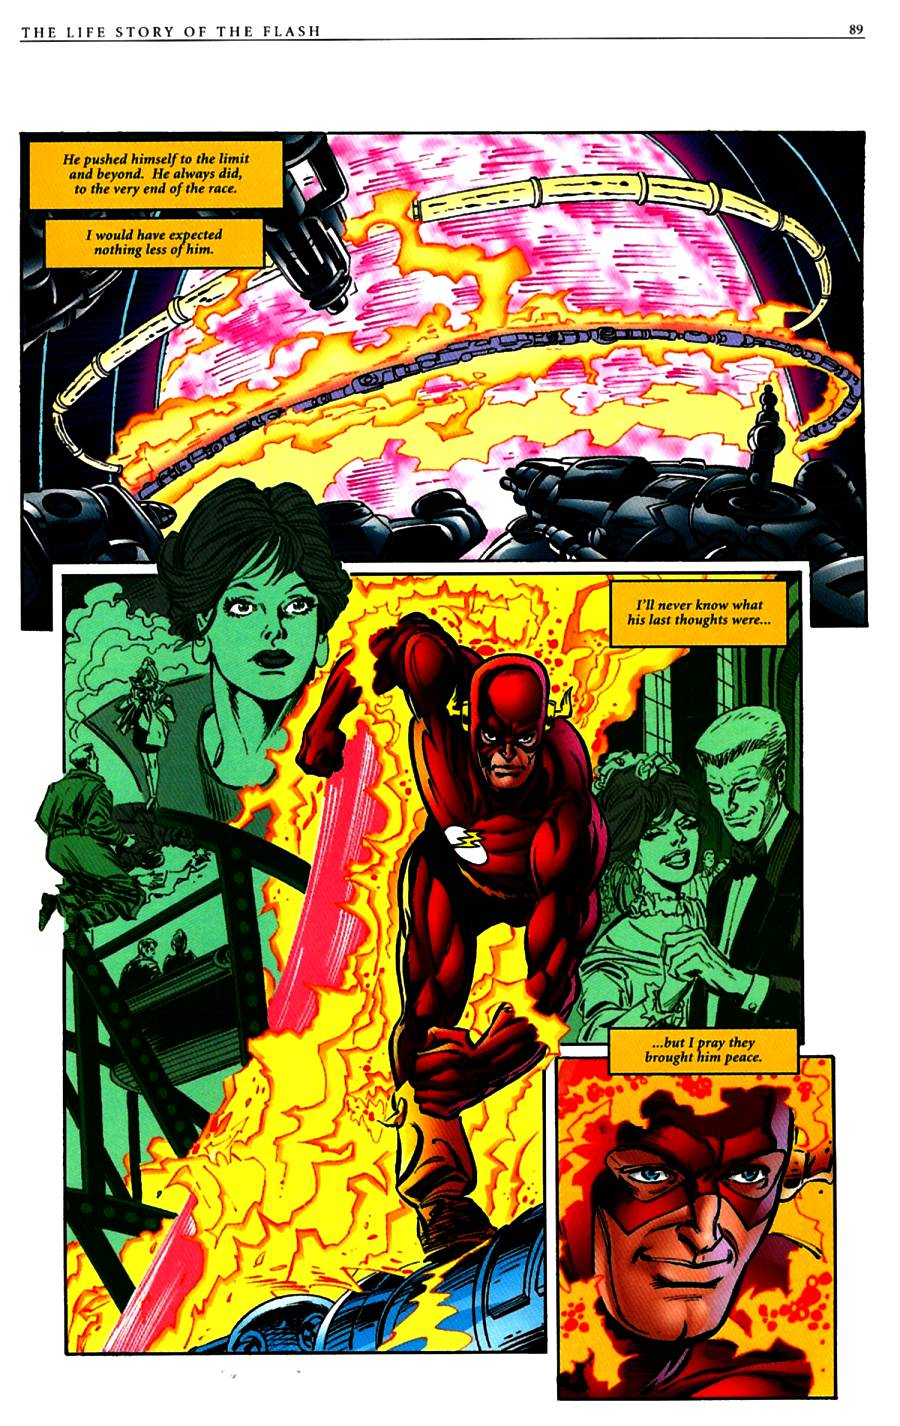 Read online The Life Story of the Flash comic -  Issue # Full - 91